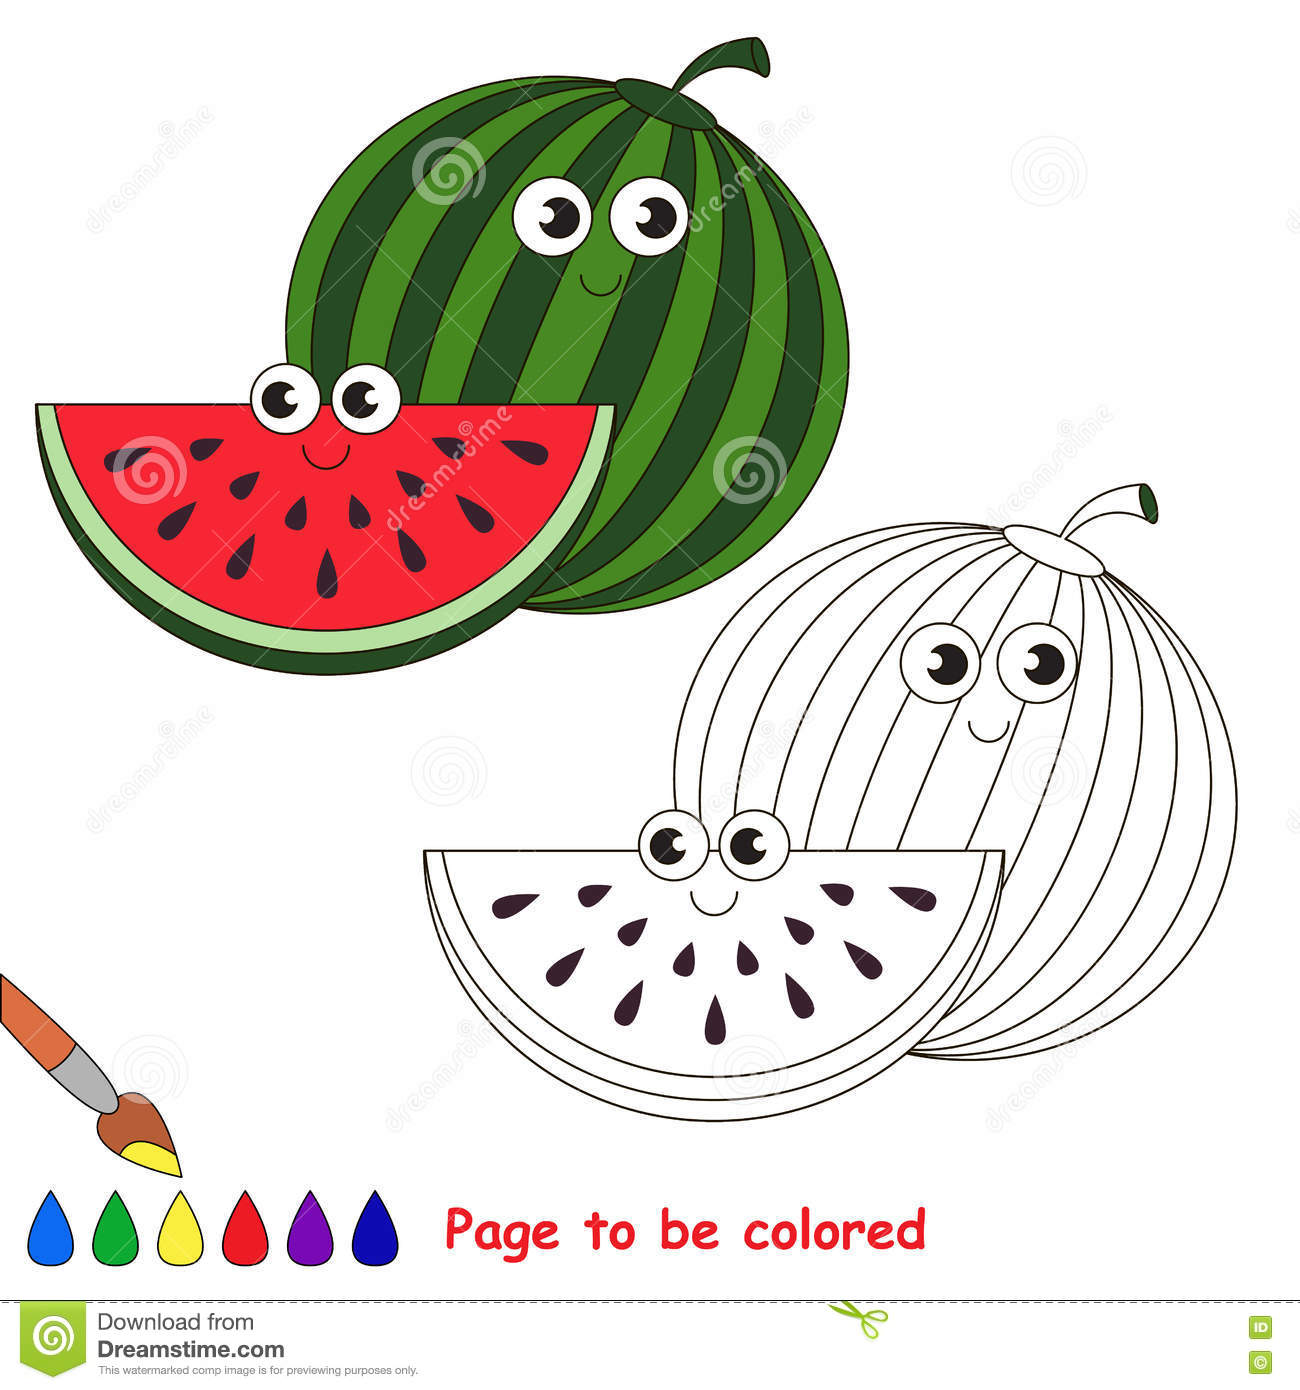 Sweet Watermelon Cartoon. Page To Be Colored. Stock Vector ...